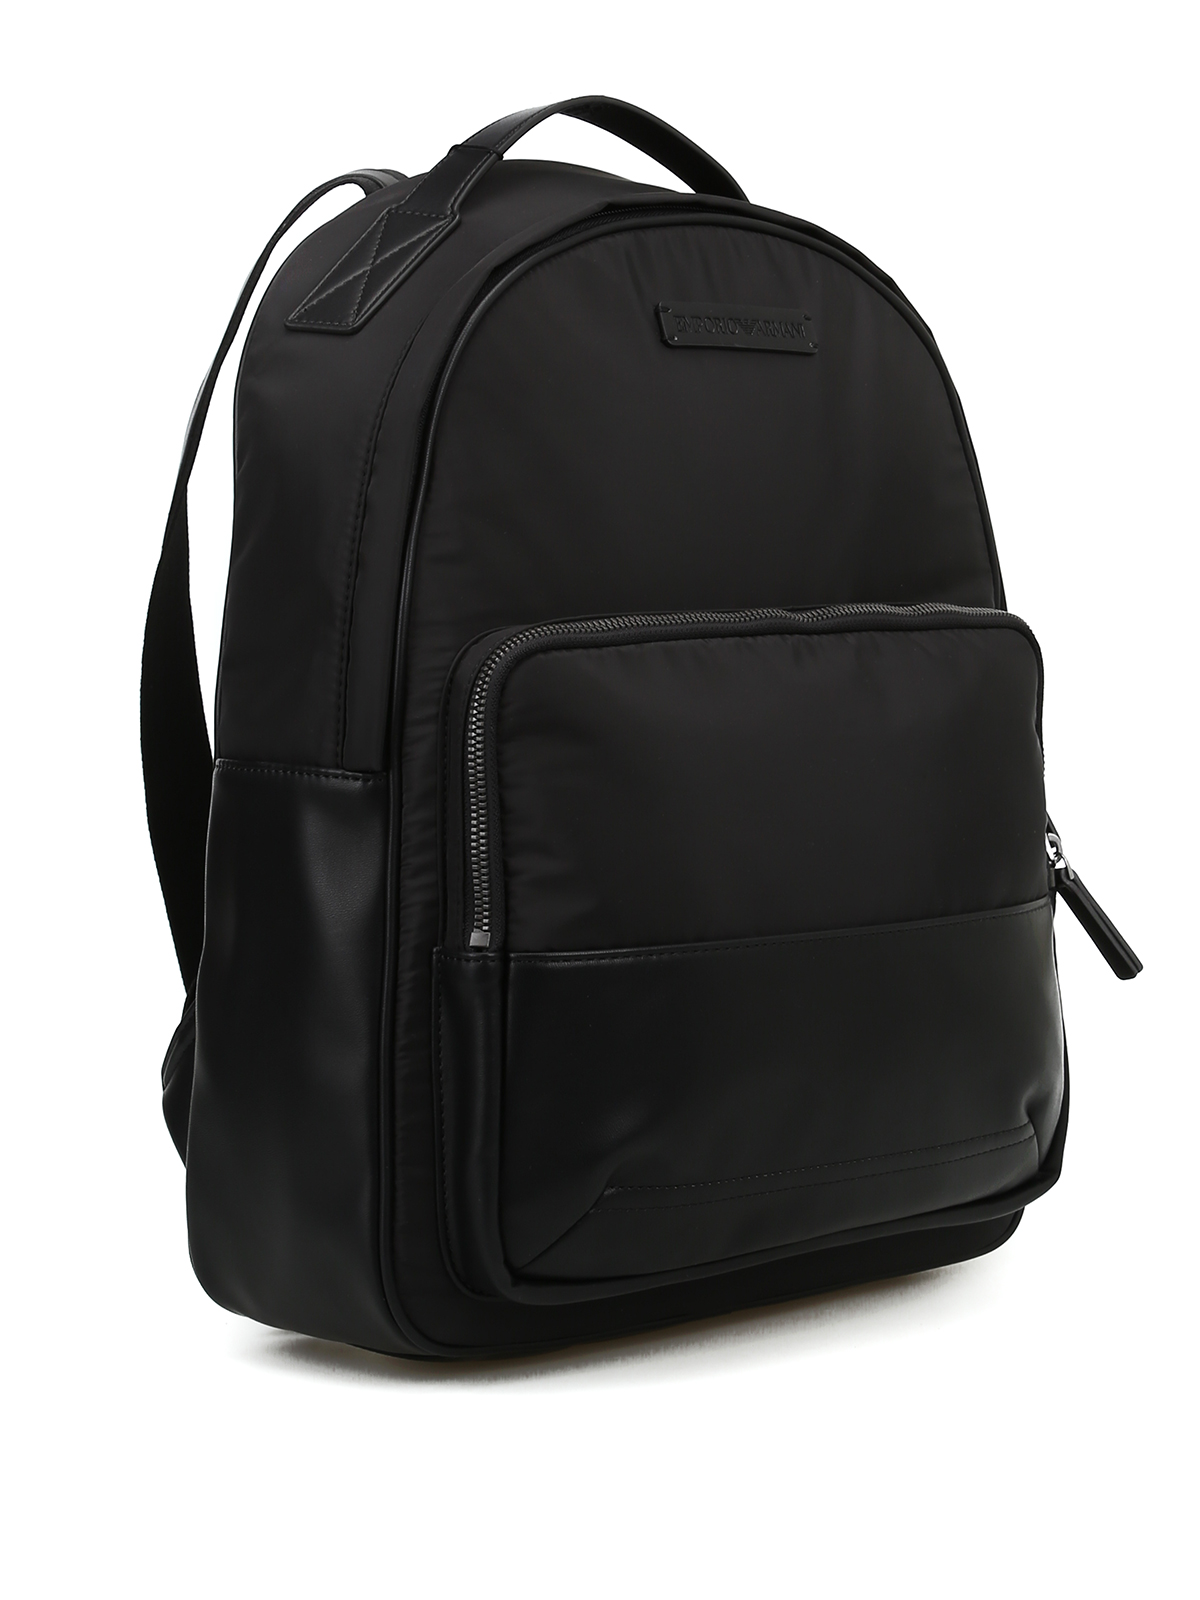 97f3728504ba EMPORIO ARMANI  backpacks online - Technical fabric and faux leather  backpack